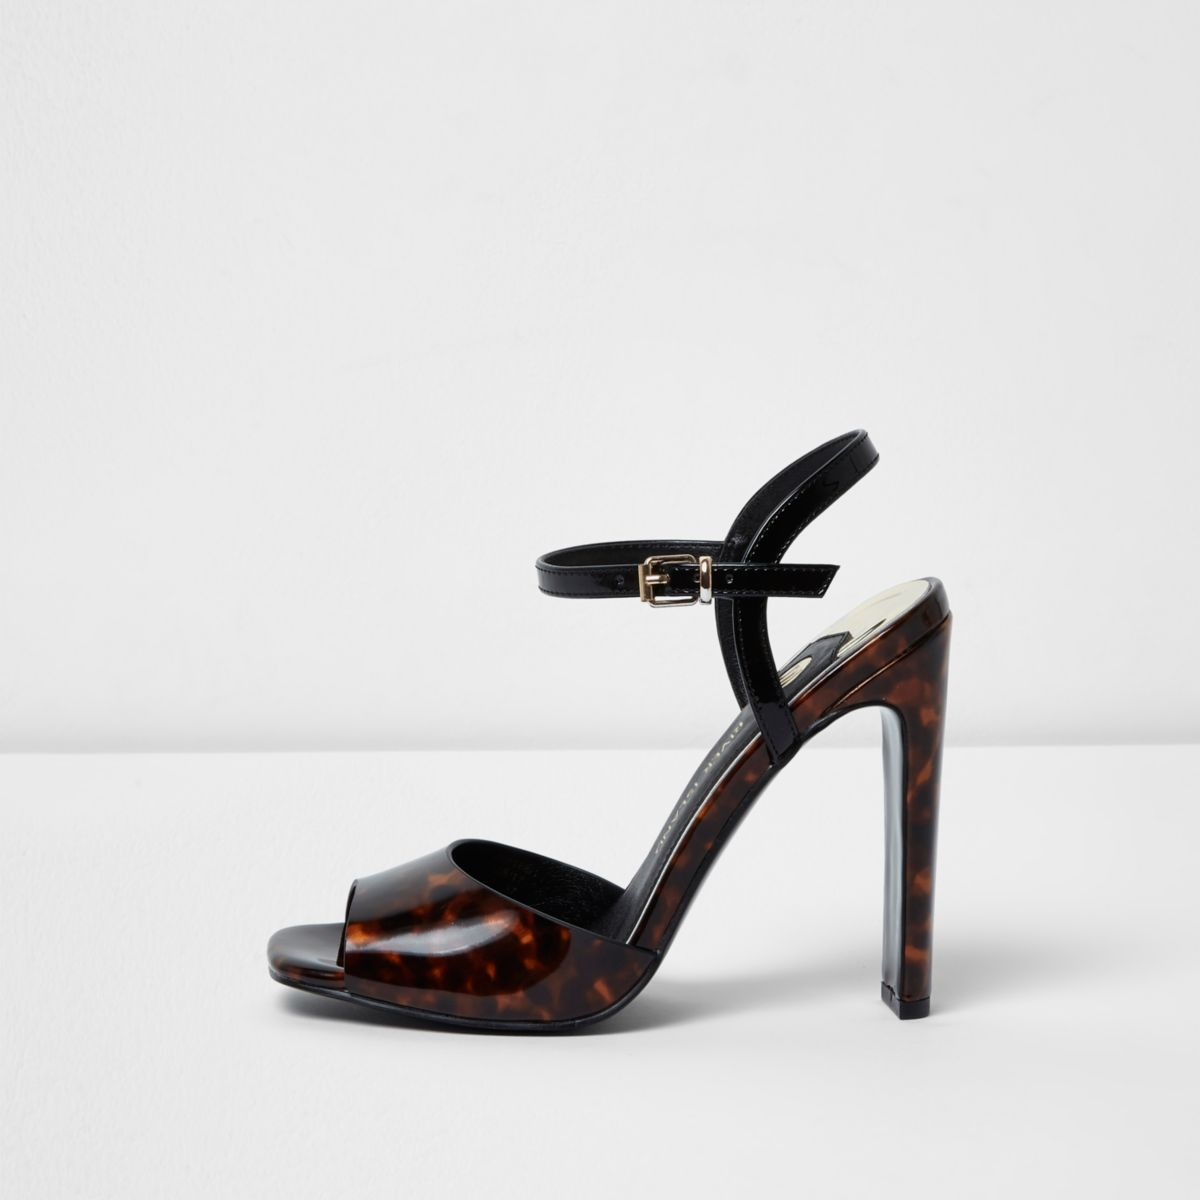 Brown tortoiseshell peep toe heeled sandals